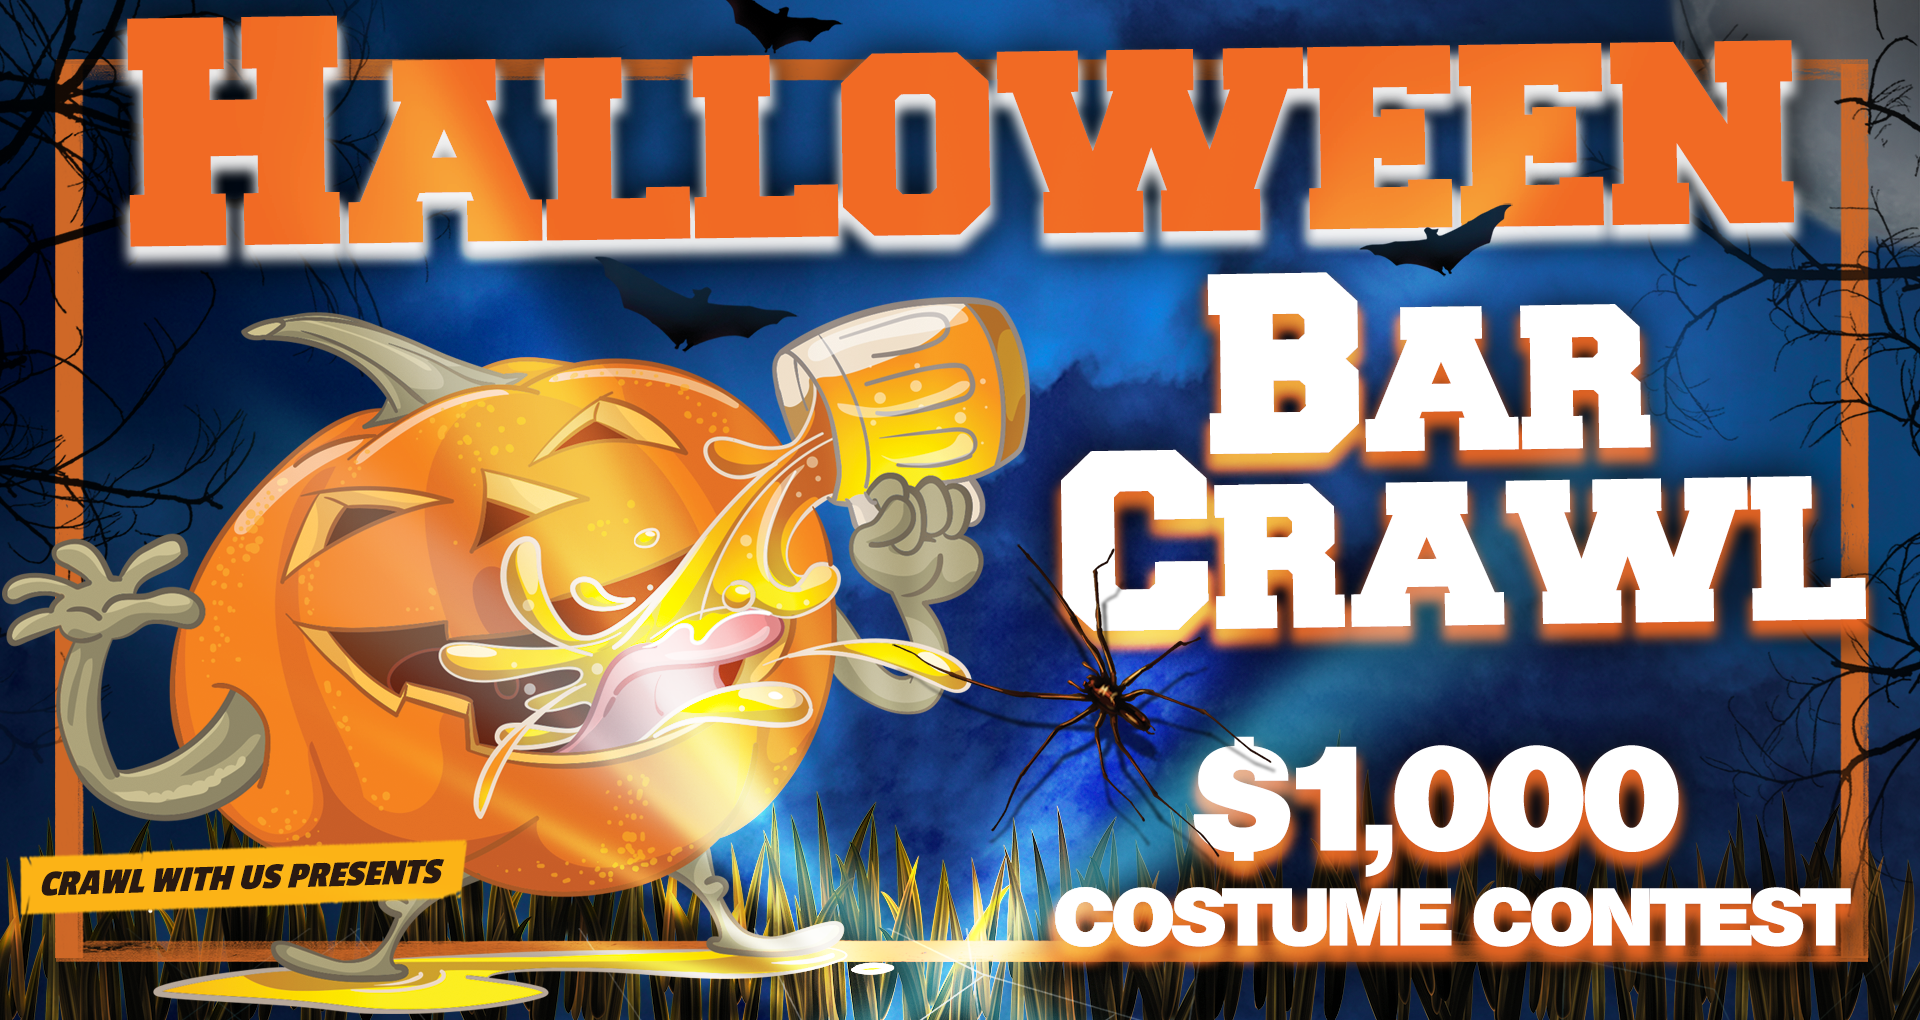 Halloween Bar Crawl - Birmingham